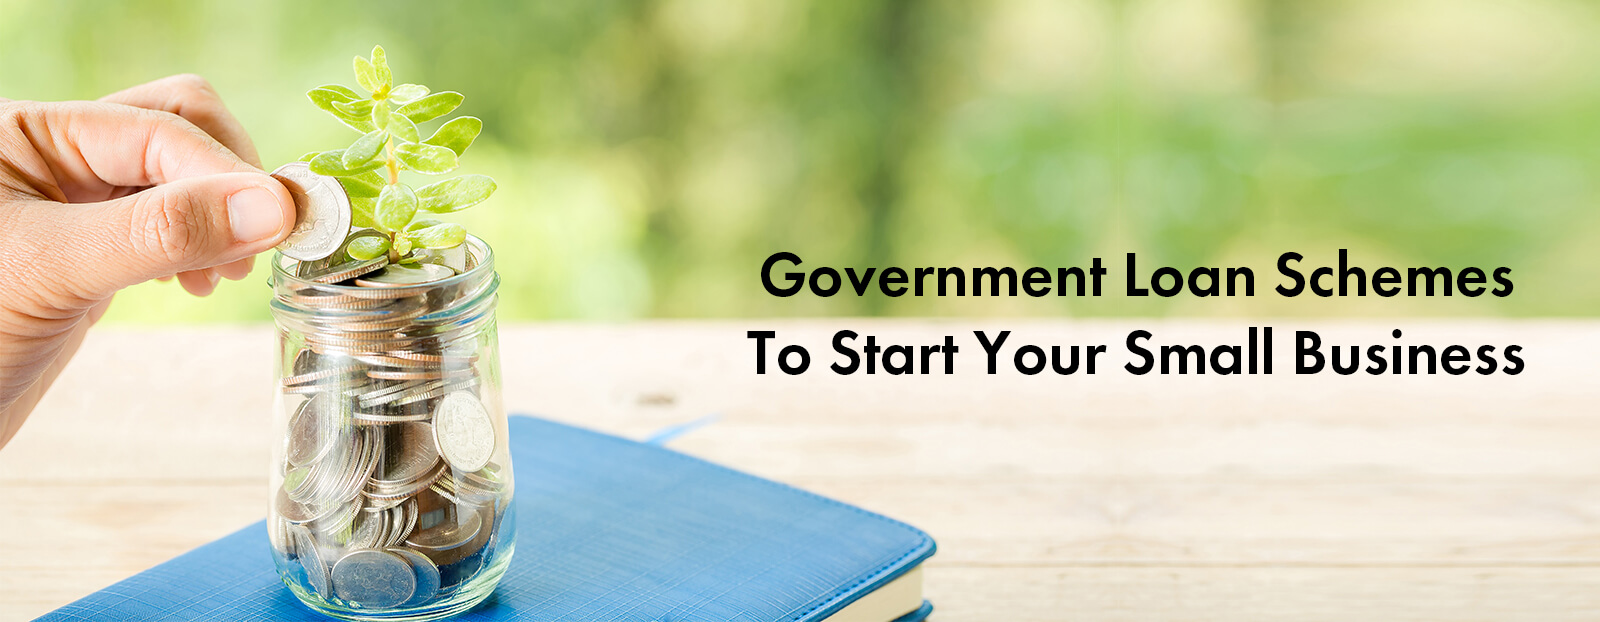 Government Loan Schemes To Start Your Small Business